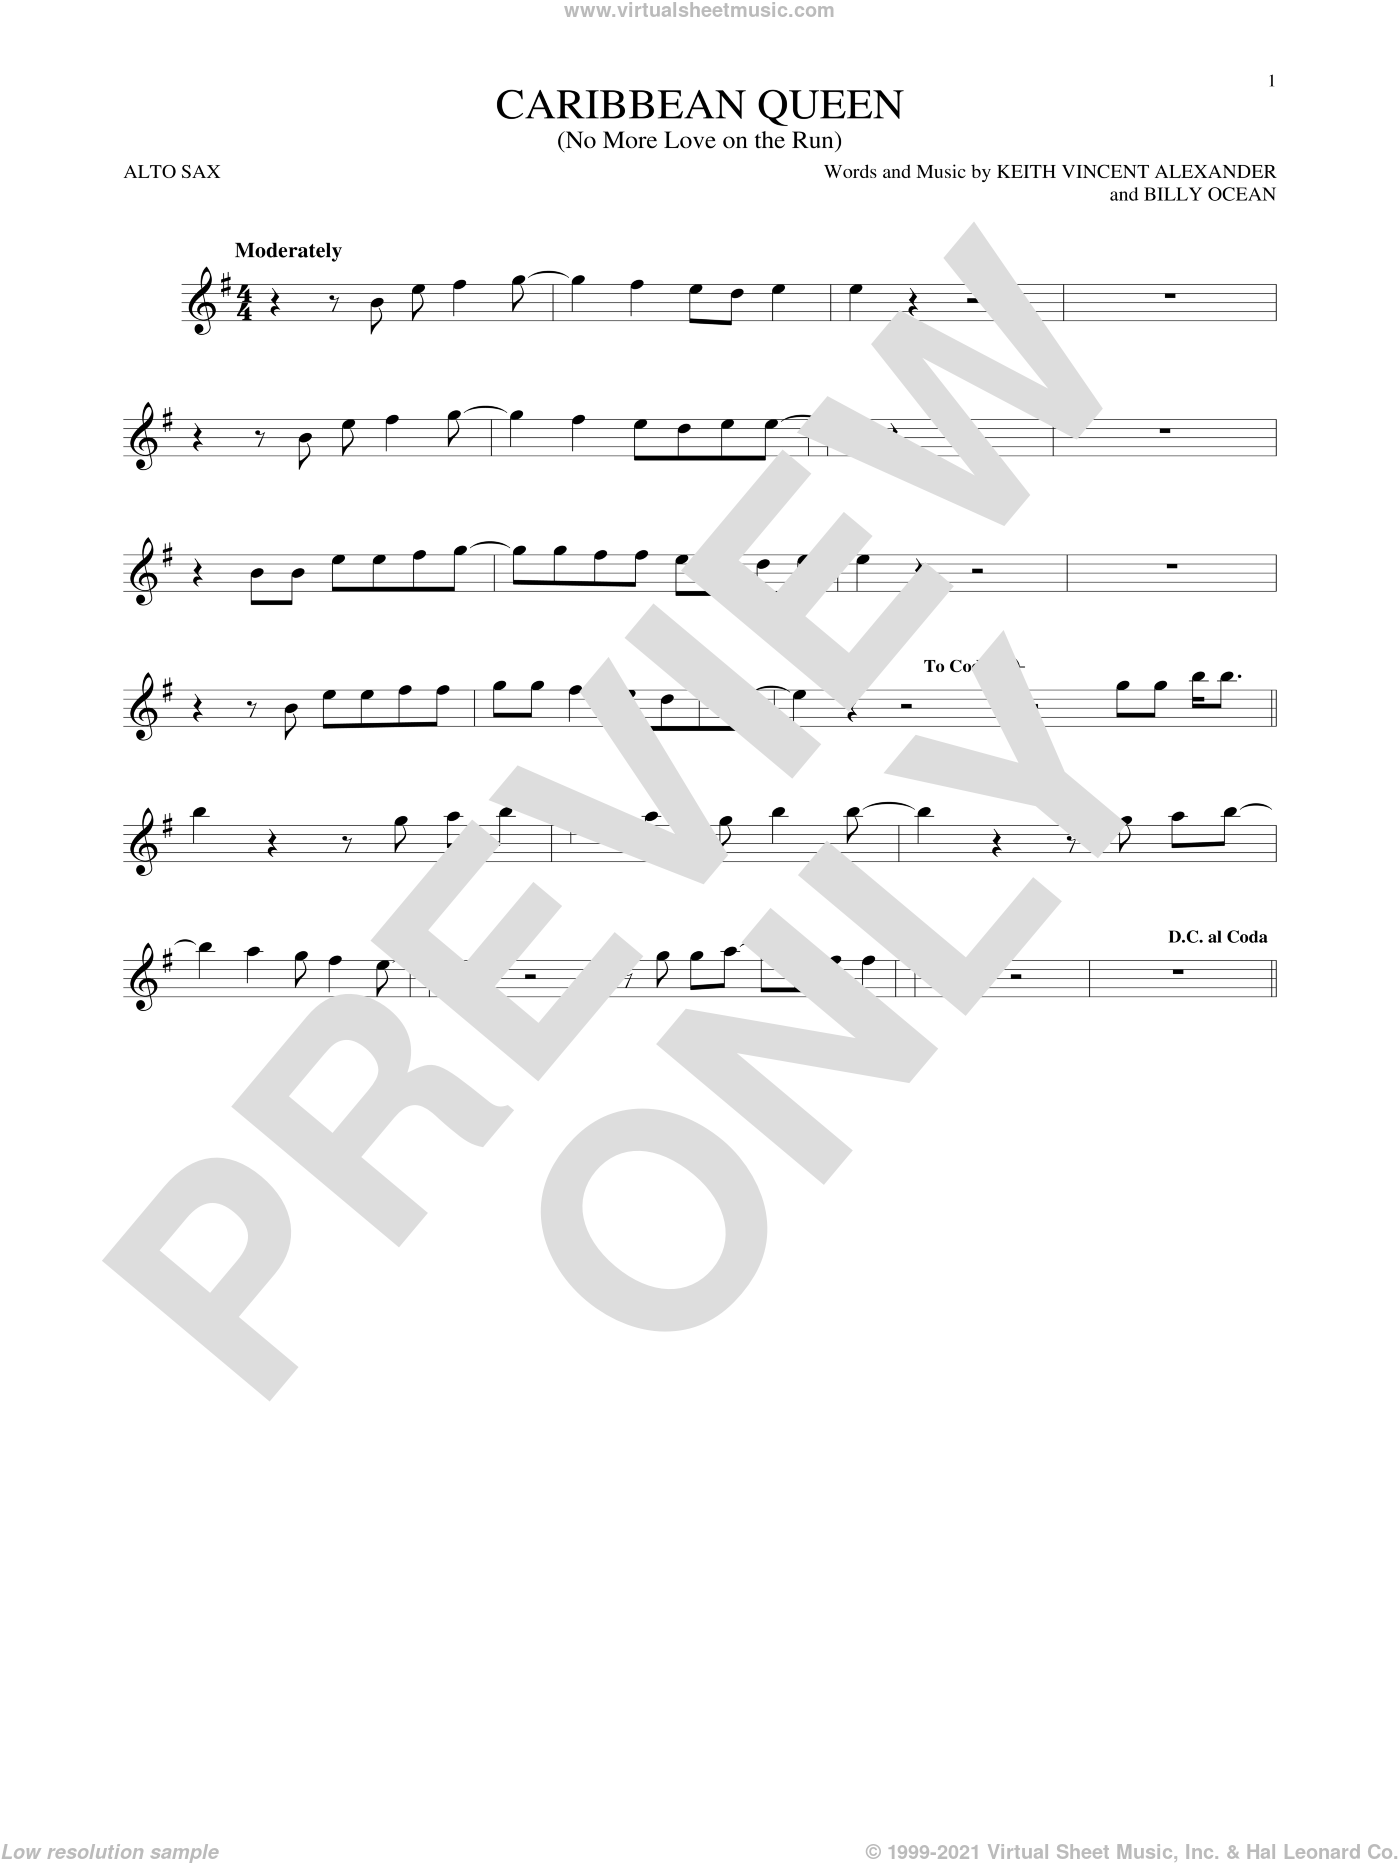 Caribbean Queen (No More Love On The Run) sheet music for alto saxophone solo by Billy Ocean and Keith Vincent Alexander, intermediate skill level